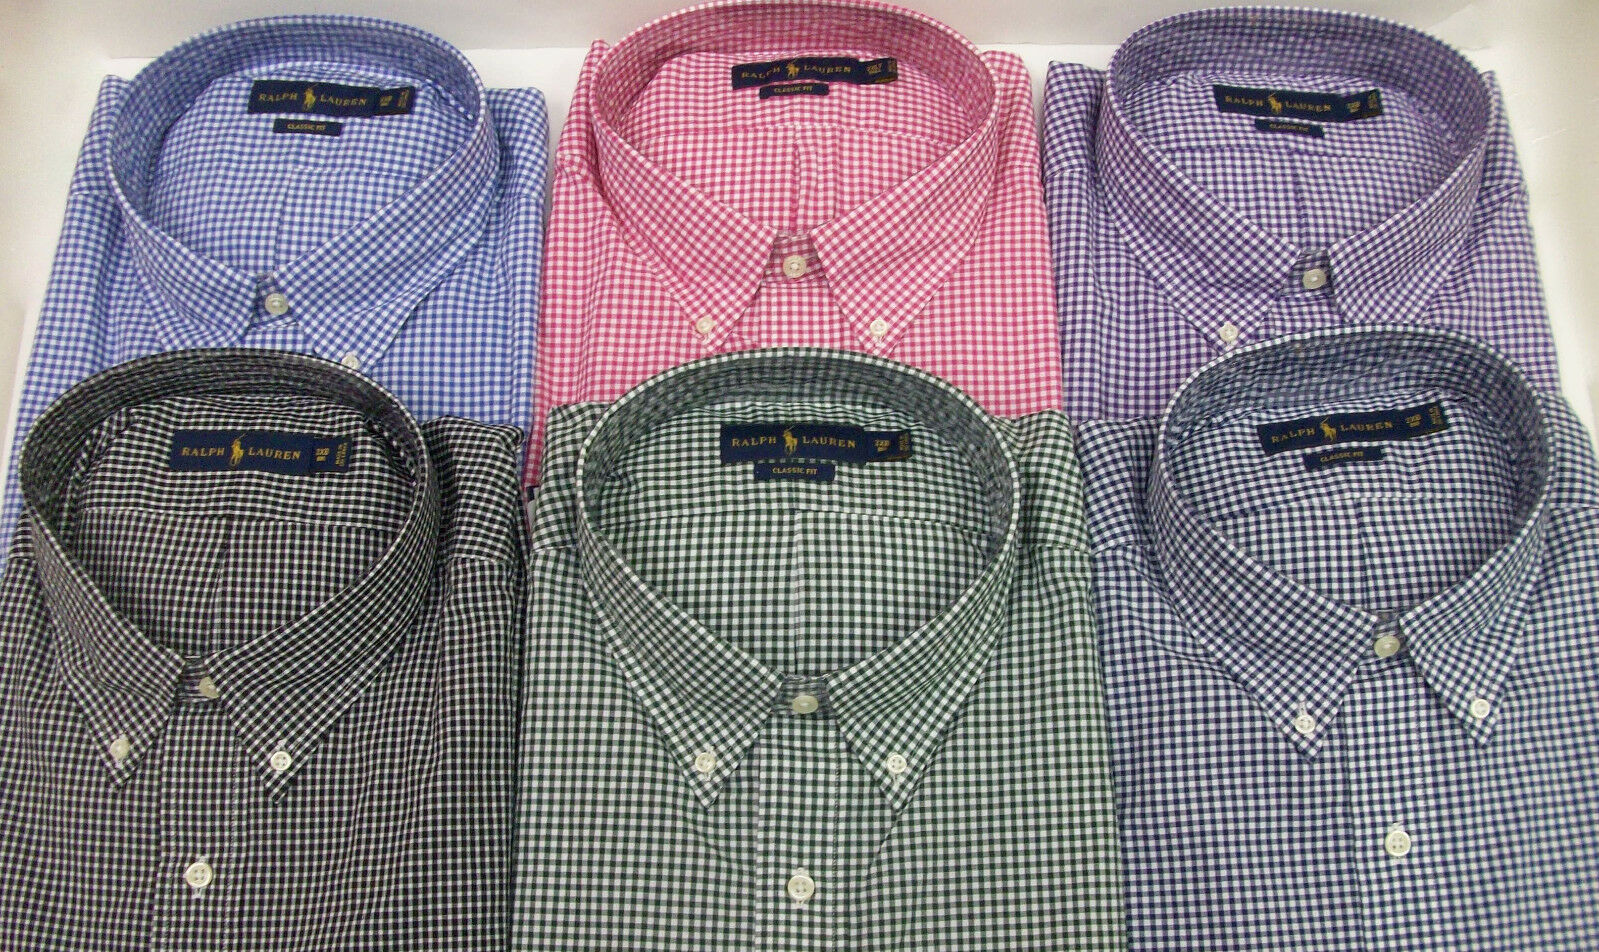 Polo Ralph Lauren Gingham Plaid Classic Fit Poplin Cotton Shirt  W  Pony NWT